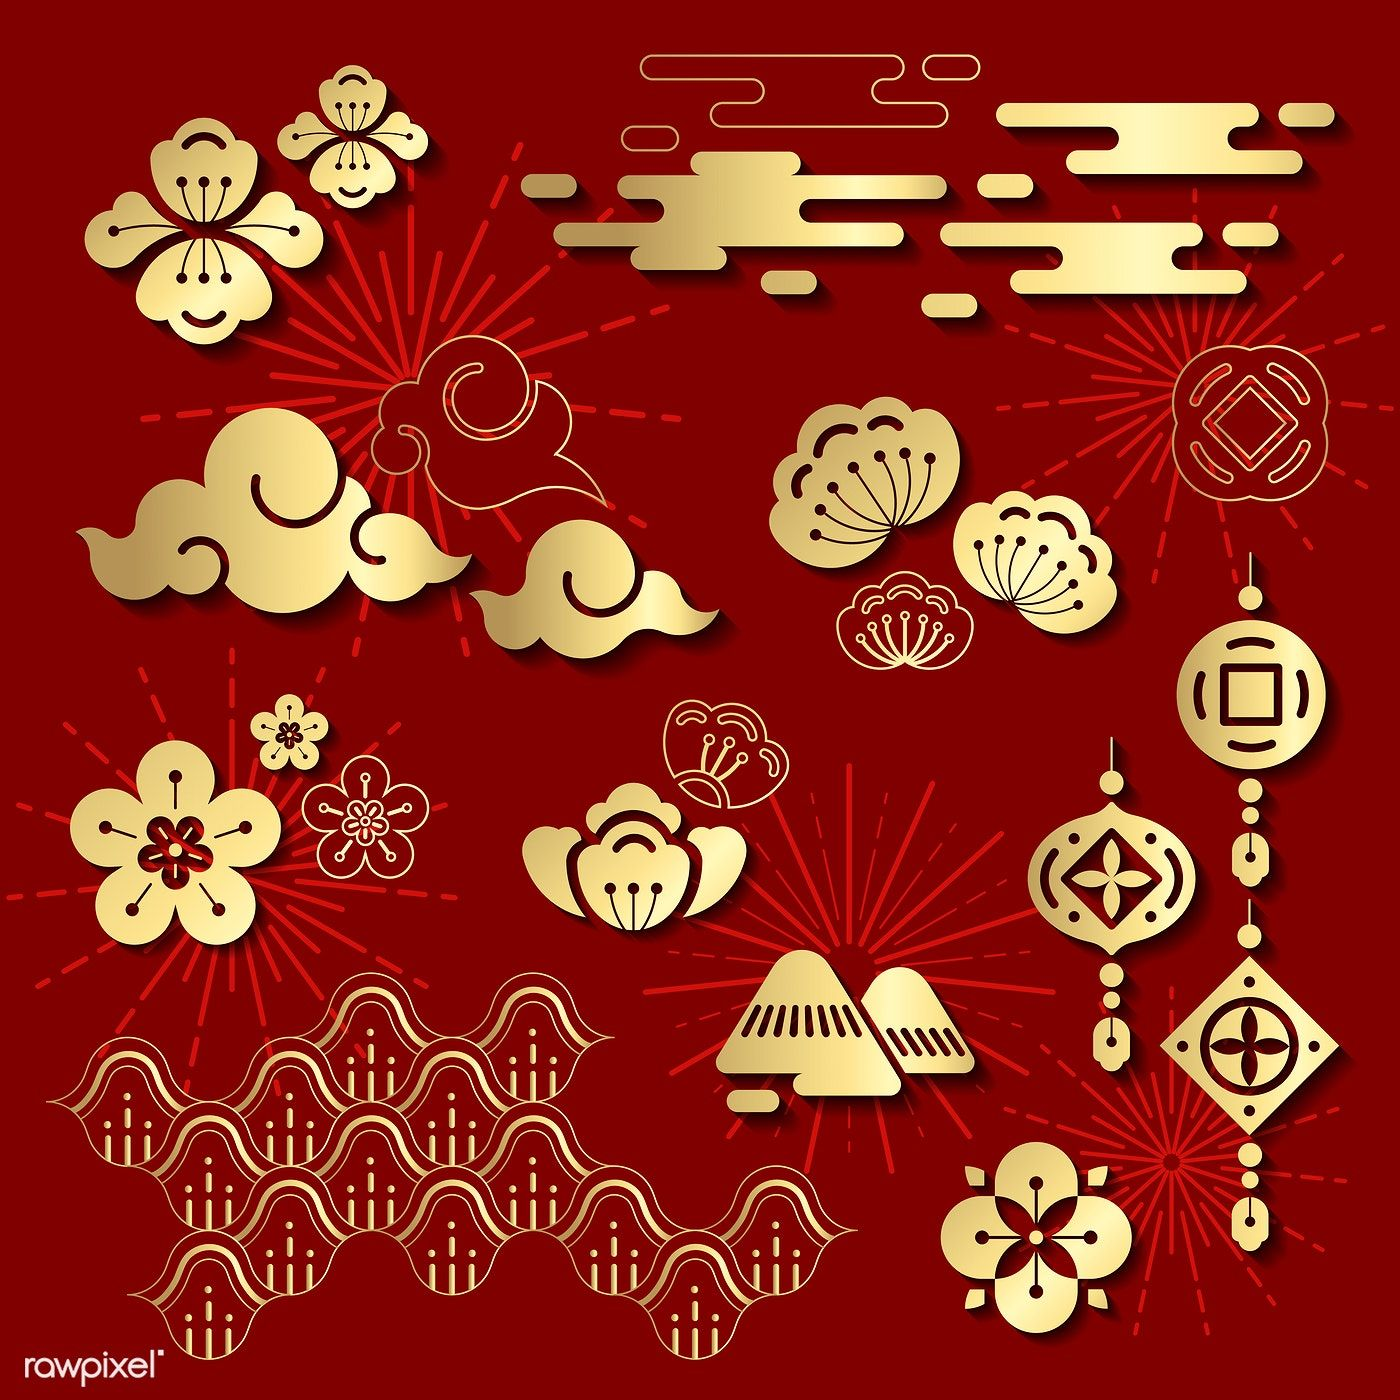 Chinese new year 2019 design free image by